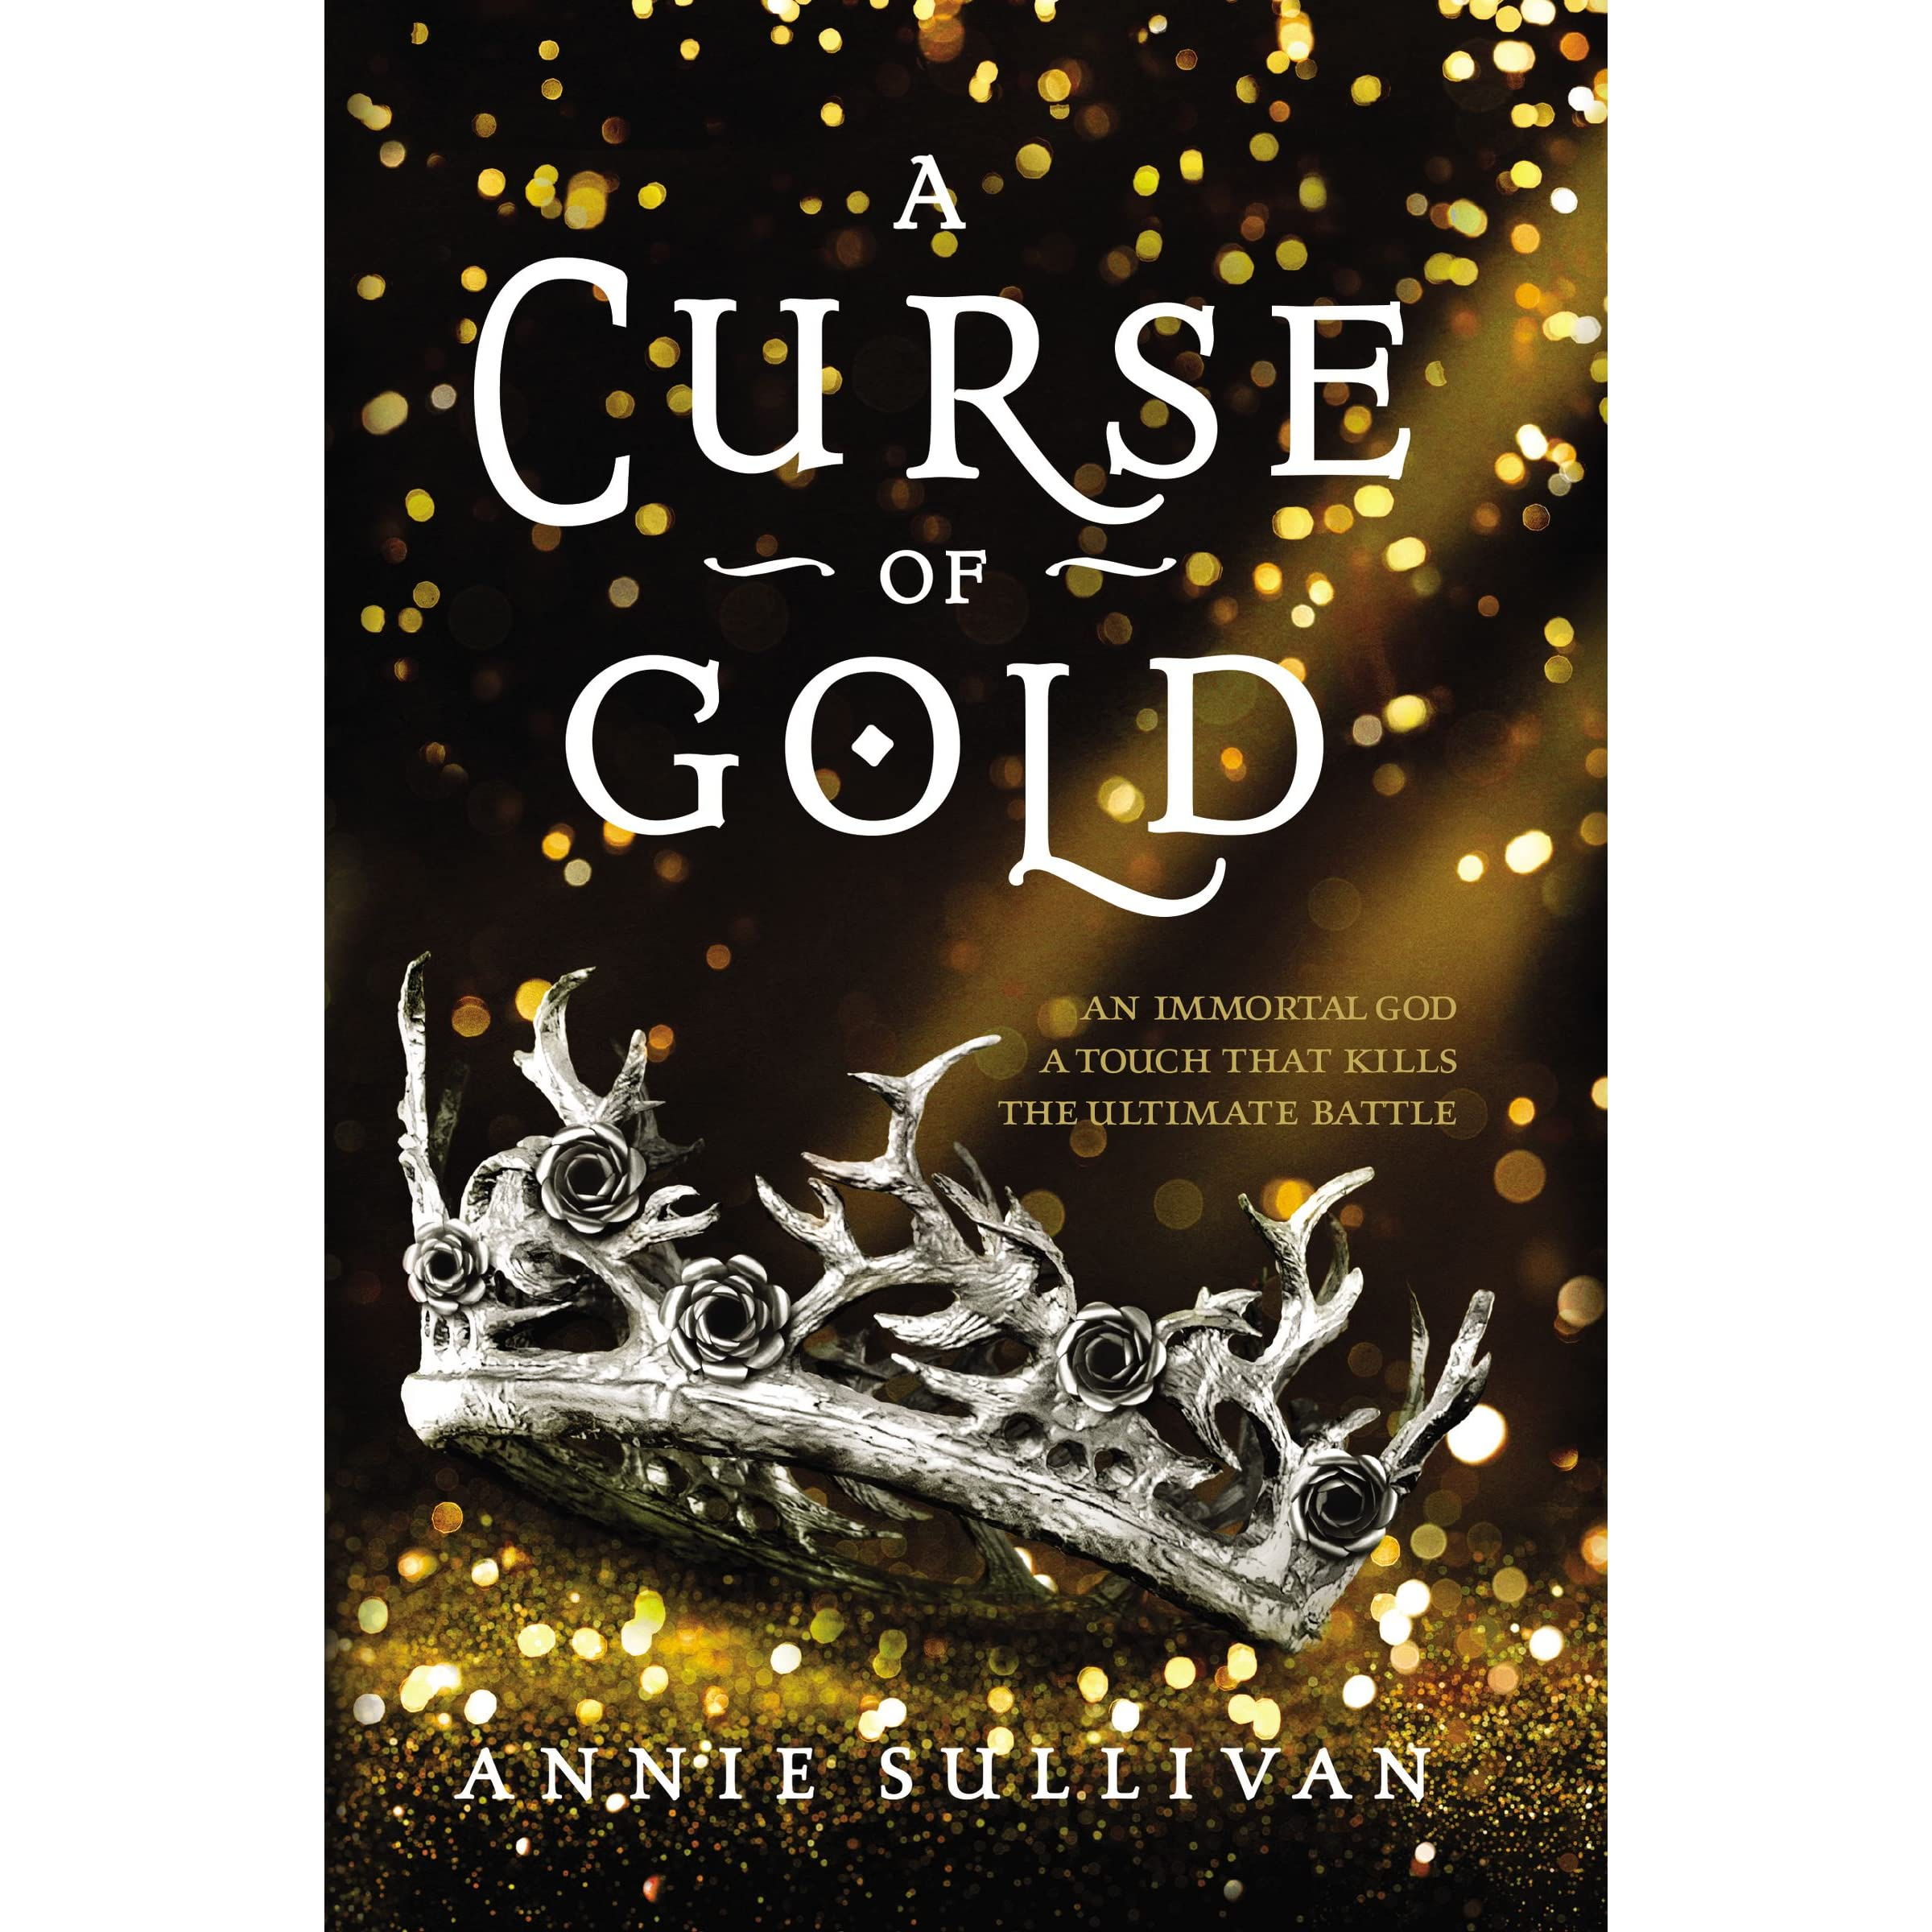 A Curse of Gold (A Touch of Gold, #2) by Annie Sullivan